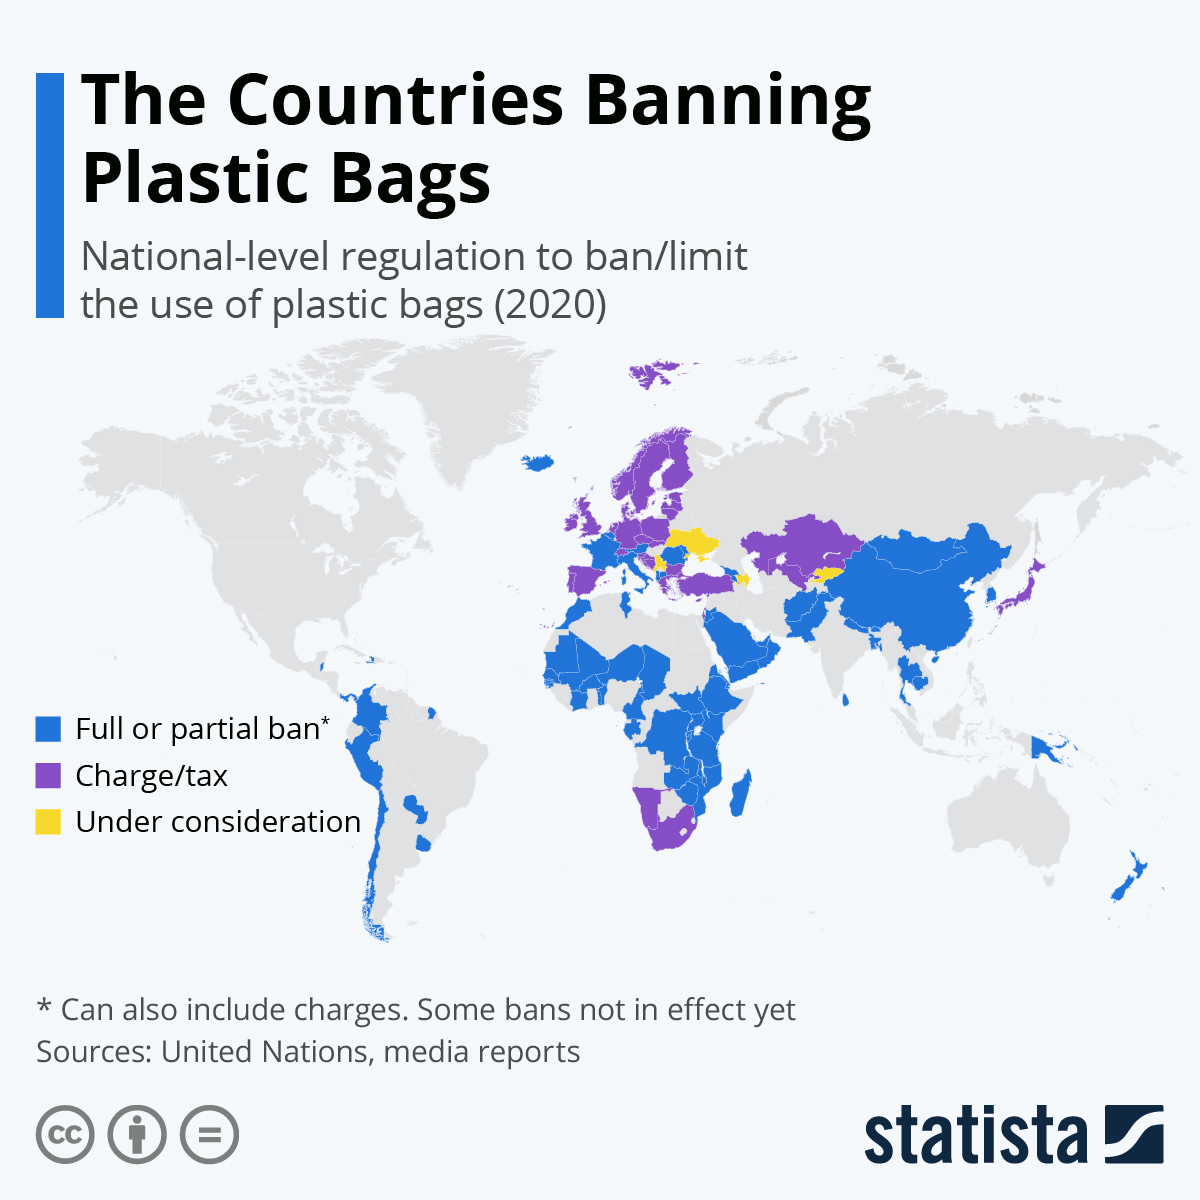 Interwaste - image of world map showing countries that have placed bans on plastic bags